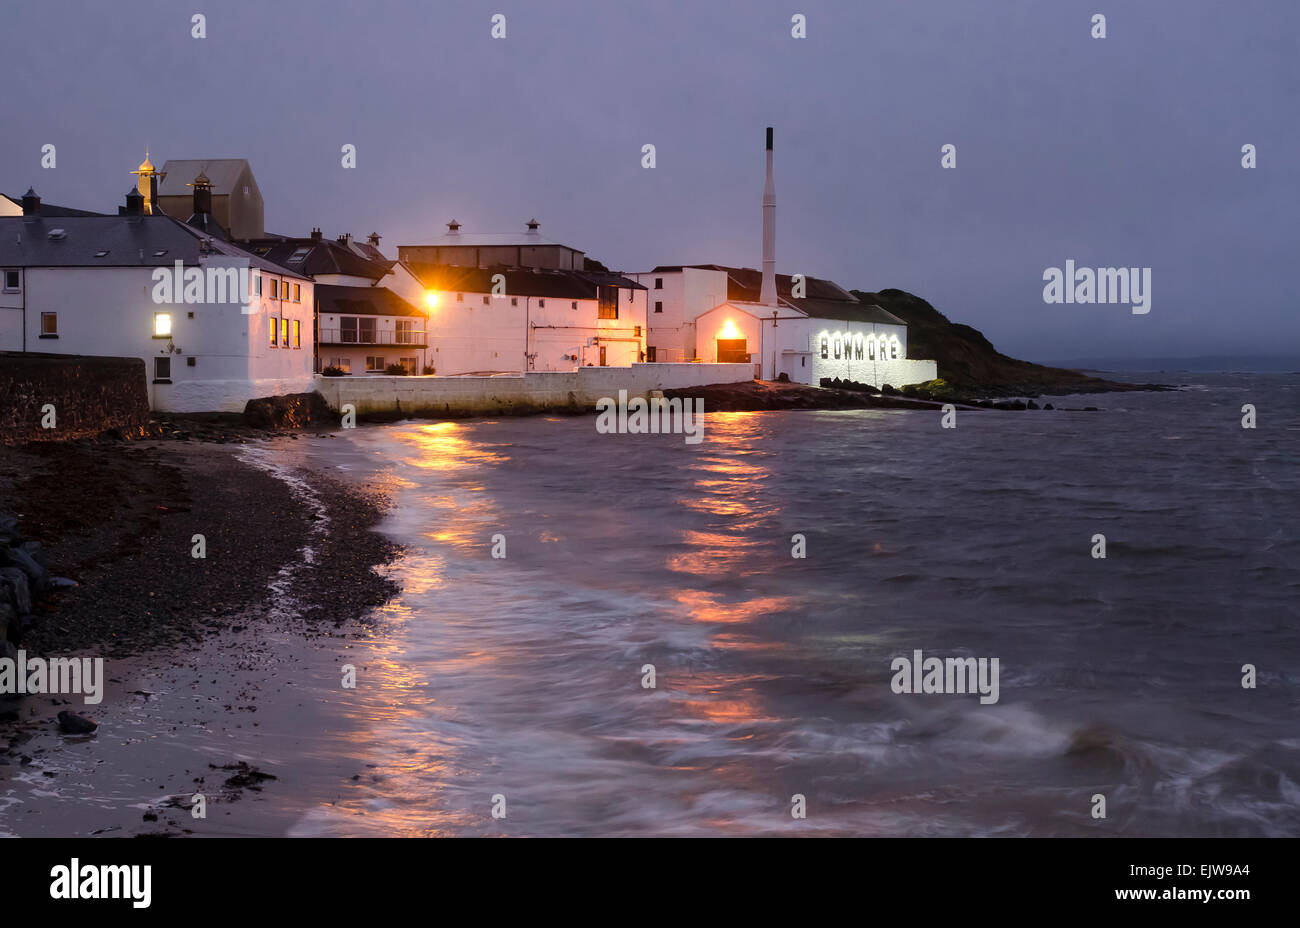 bowmore distillery at dusk with shoreline and lapping seawater - Stock Image